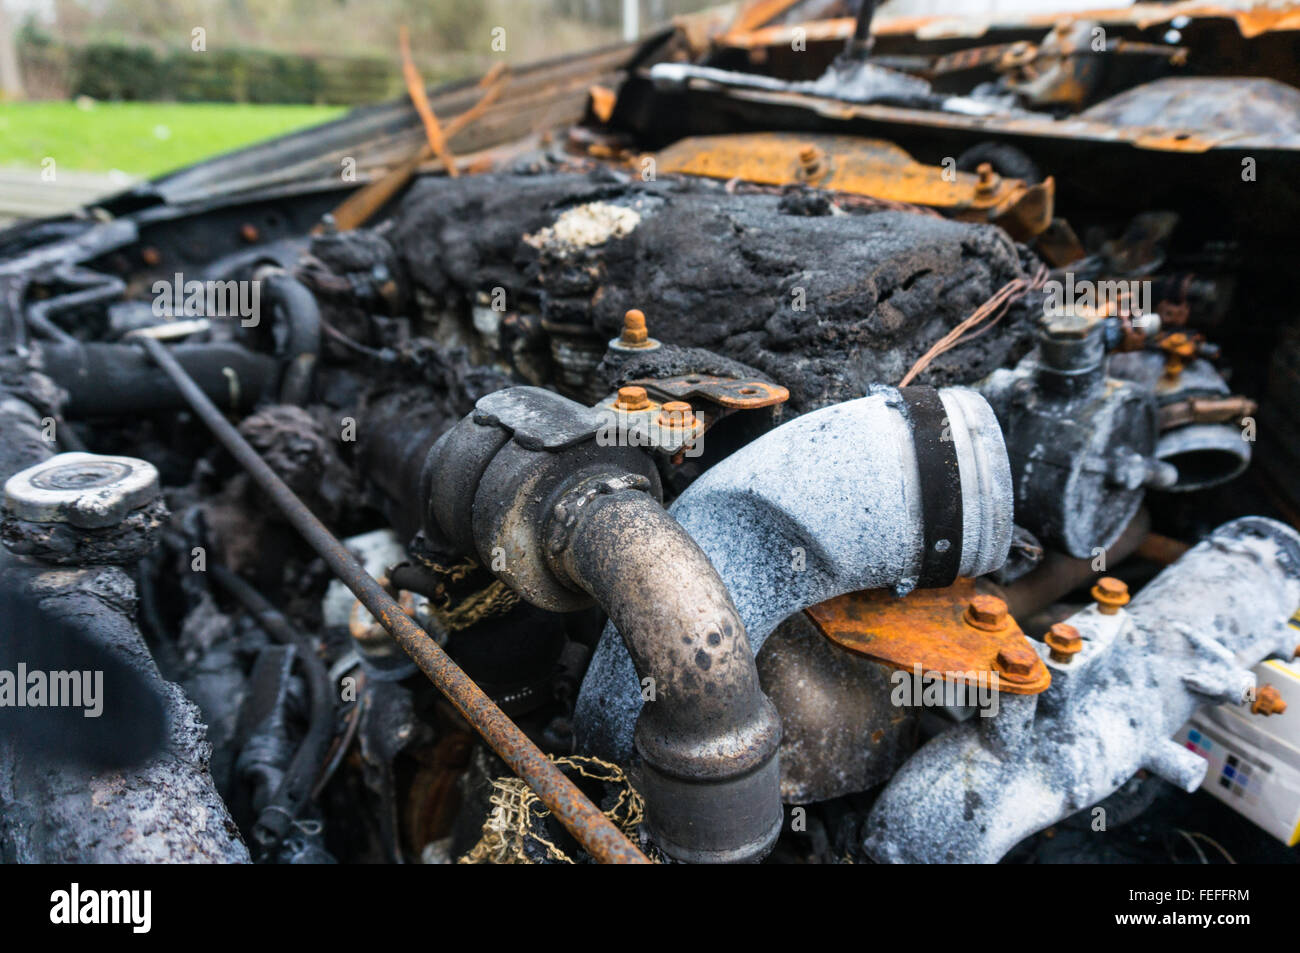 Engine compartment of abandoned fire damaged car - Stock Image